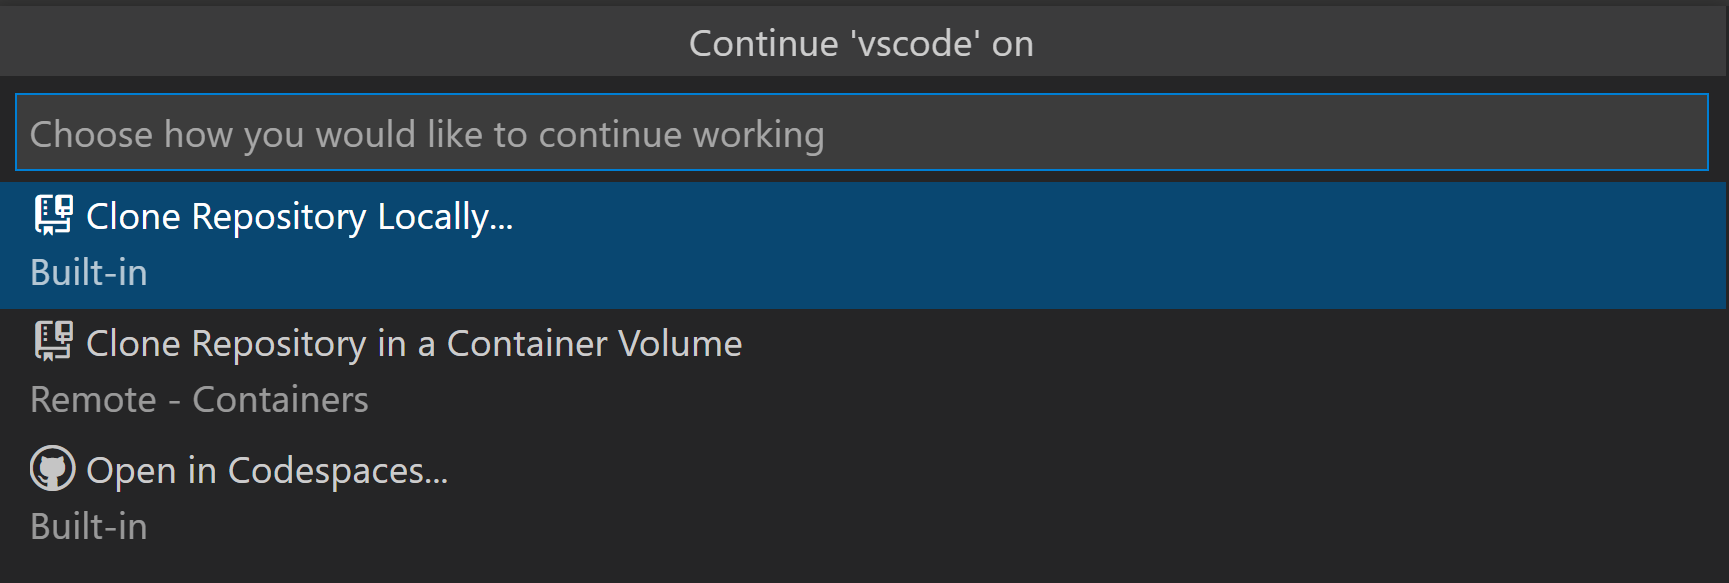 VS Code Command Palette with options to continue locally, in a volume, or in Codespaces